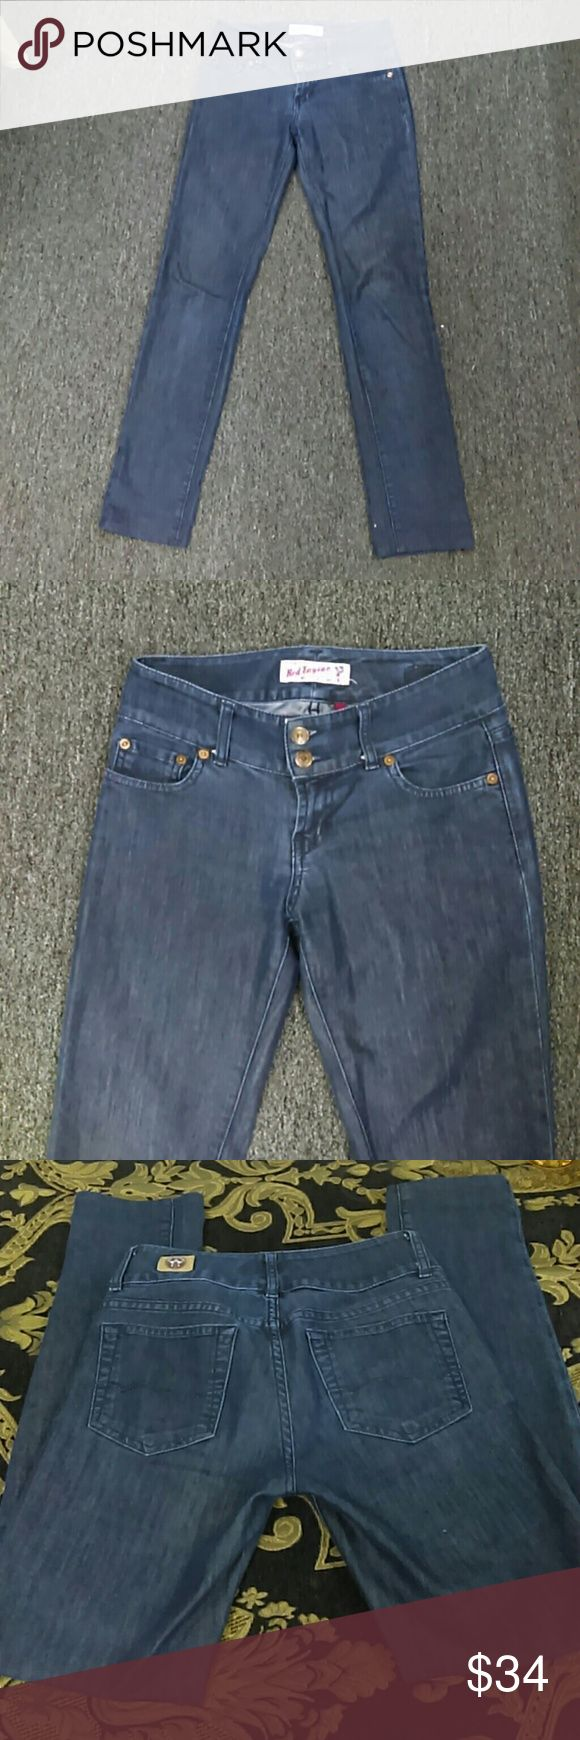 Red Engine Skinny Jeans Sz. 25 Gently loved in good condition. Denim still has excellent coloring. No fading at all. Does have small nick in jeans (see pictures) Red Engine Jeans Skinny